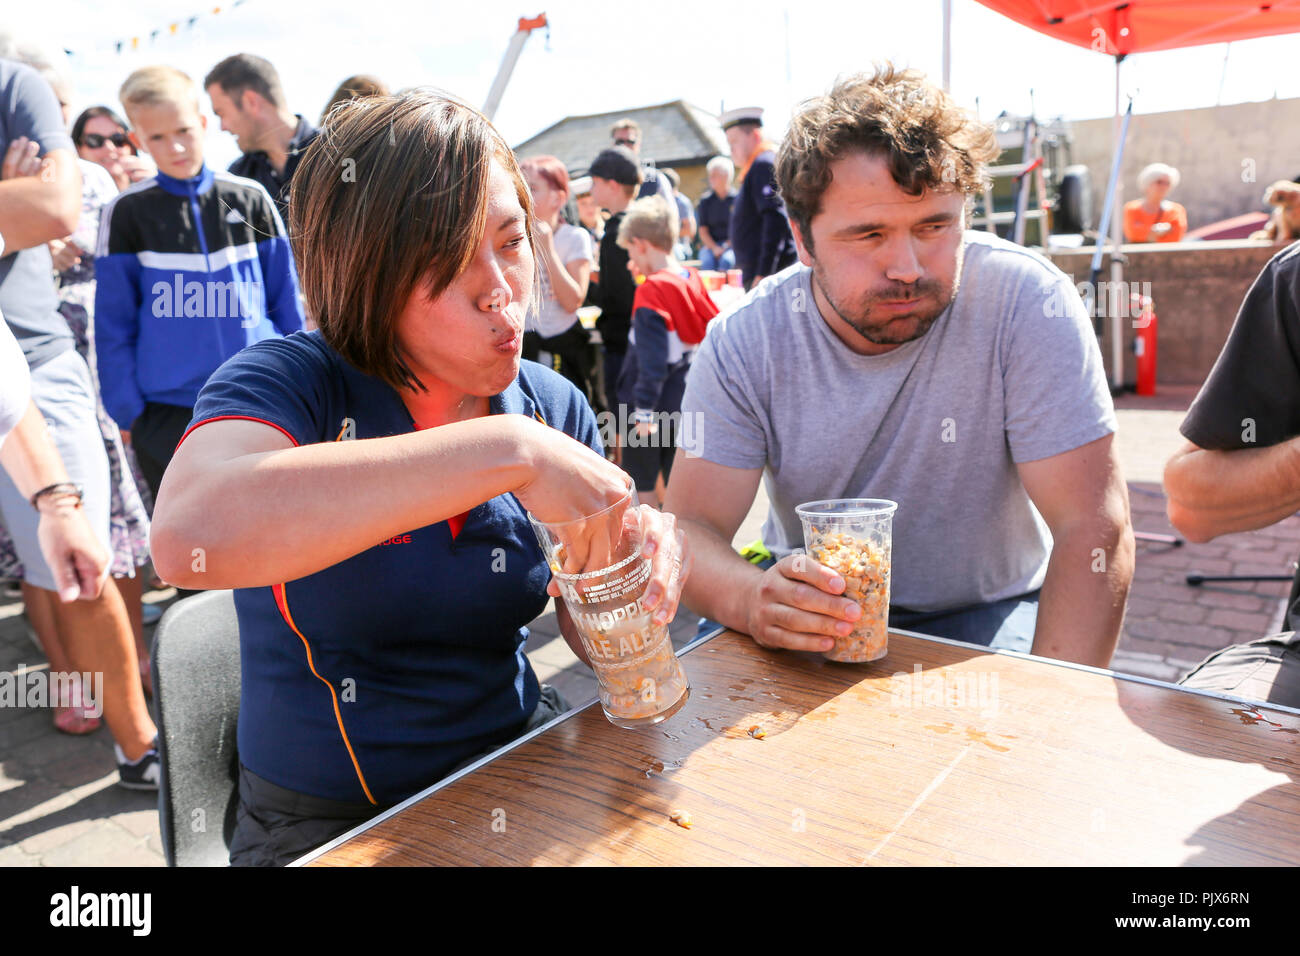 Essex, UK. 9th September 2018. Competitors take part in the 'eat a pint of cockles' competition.  The Regatta is organised by Lions Club of Leigh-on-Sea with help  from the local Sea Scouts. The event features a variety of live music, traditional food and drink. Penelope Barritt/Alamy Live News - Stock Image